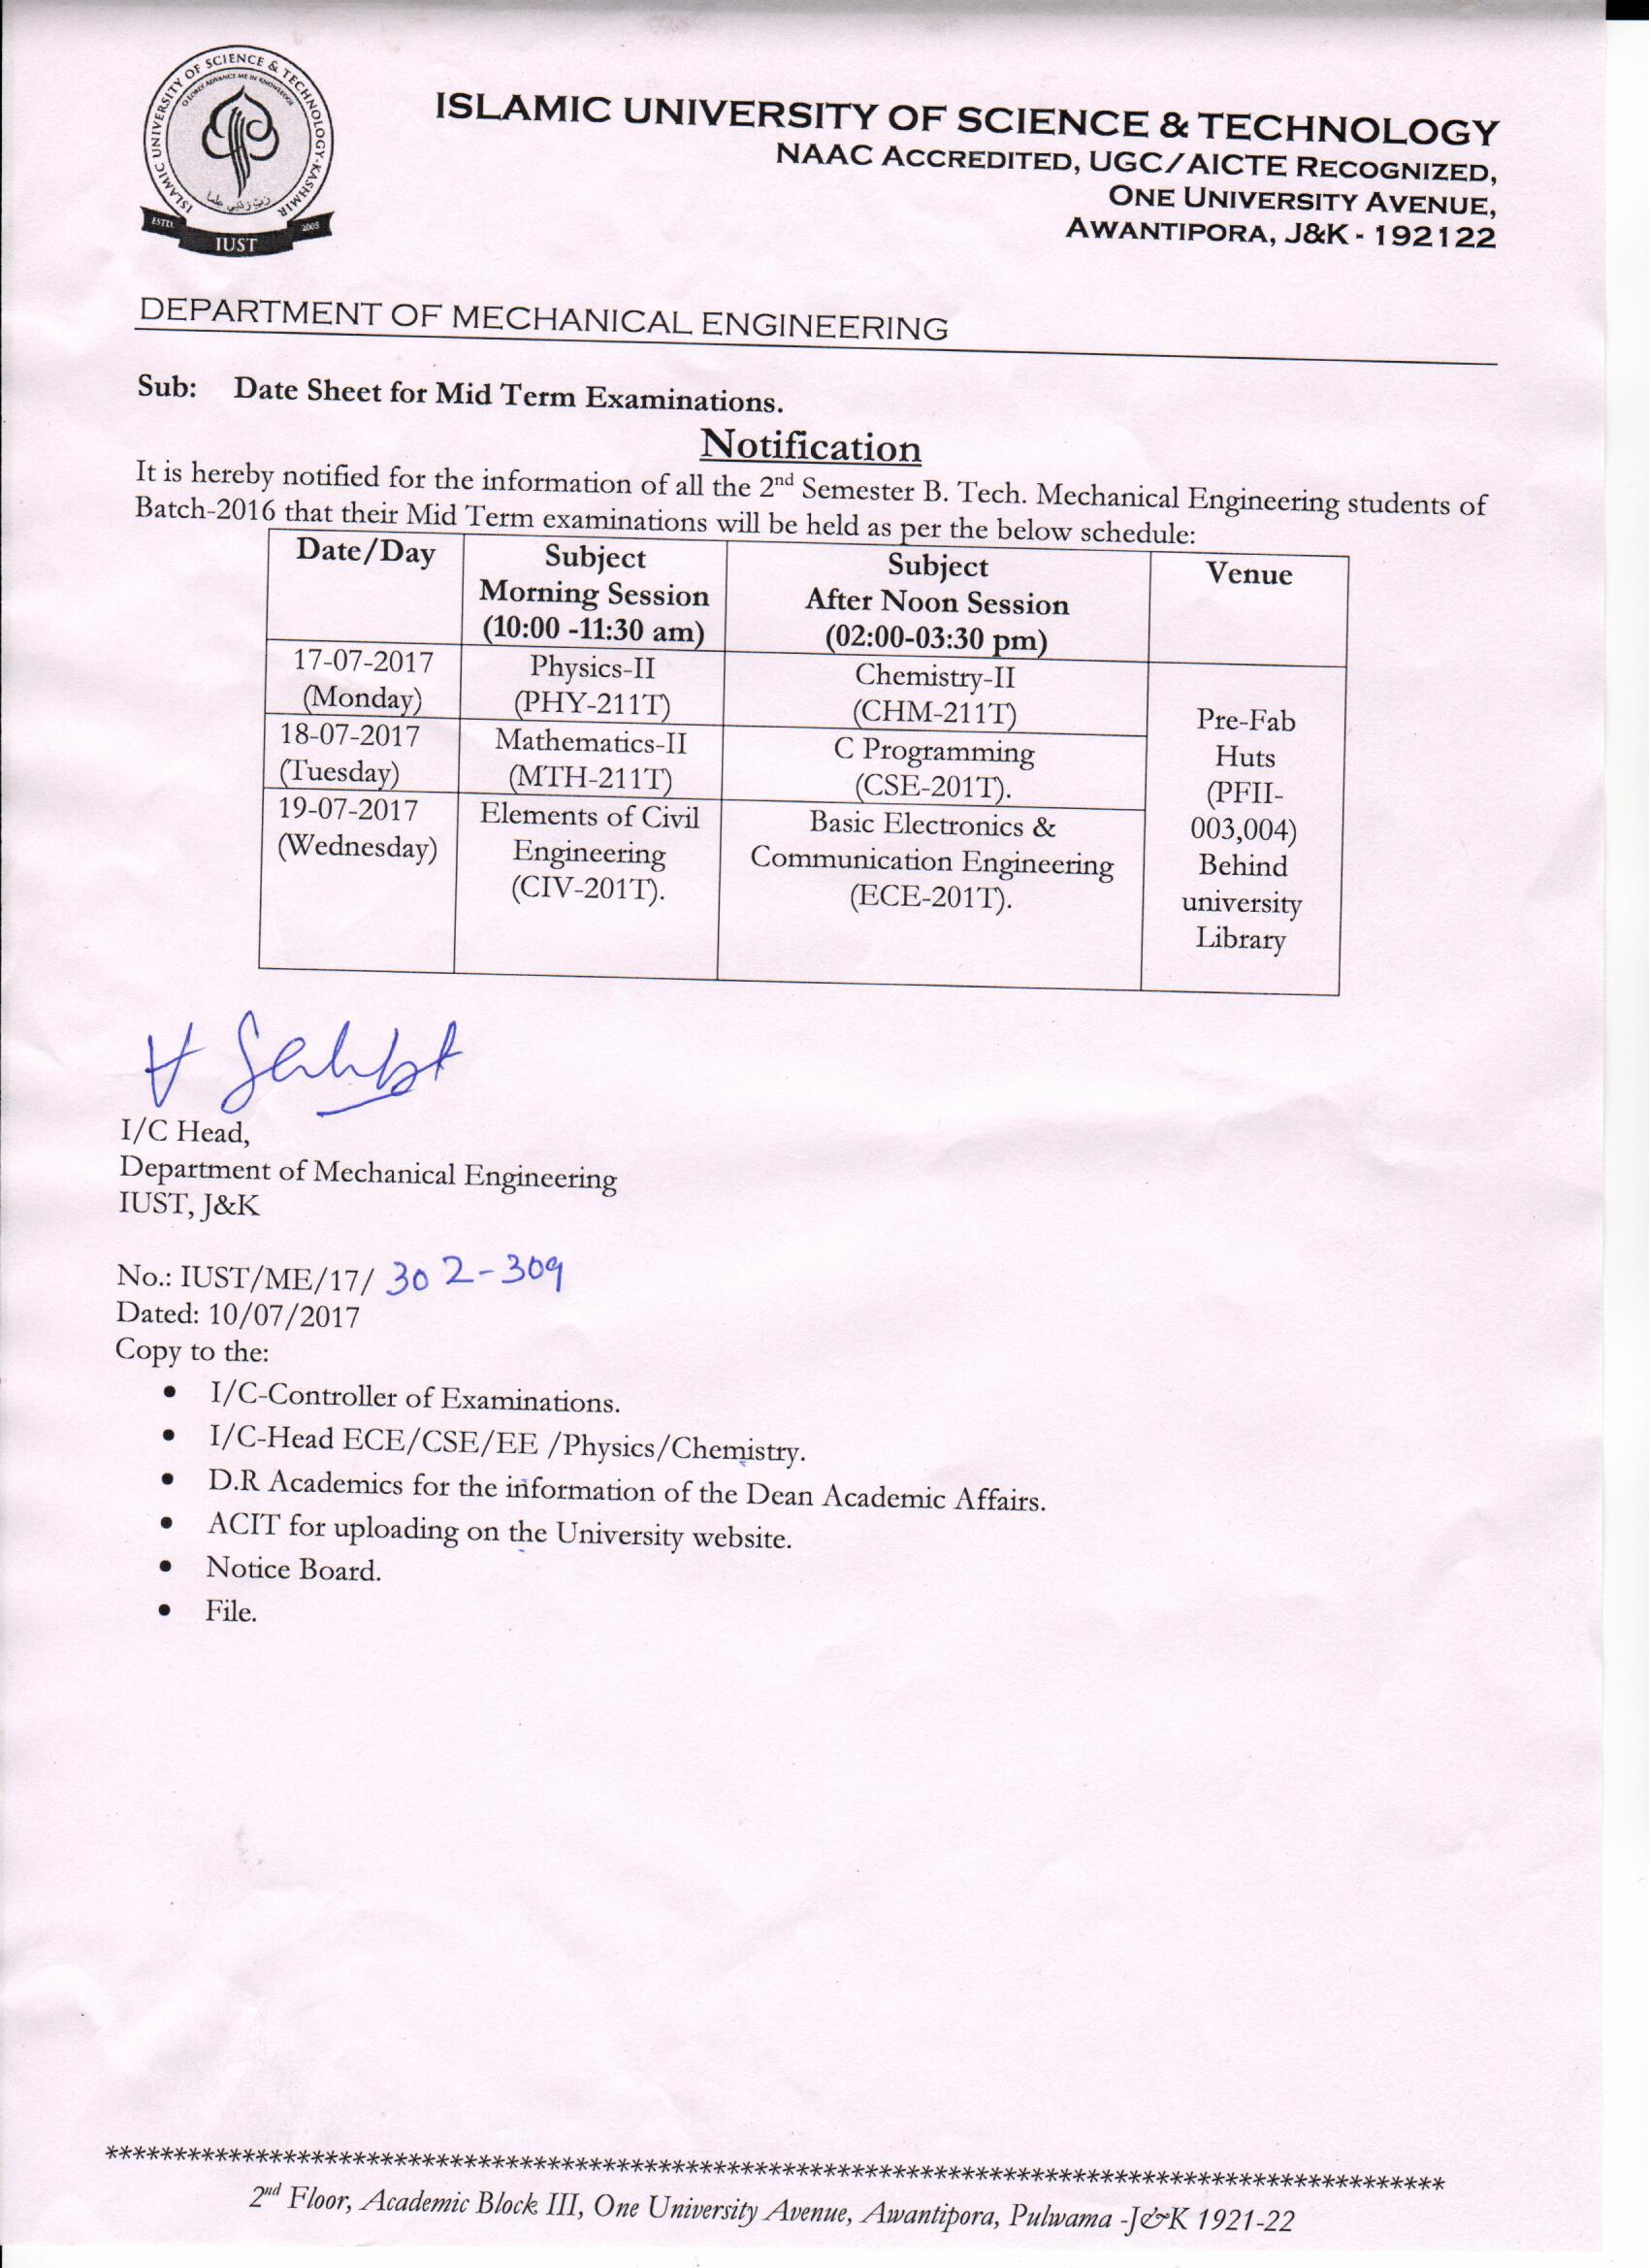 Mid Term Examinations Date Sheet of the department of Mechanical Engineering